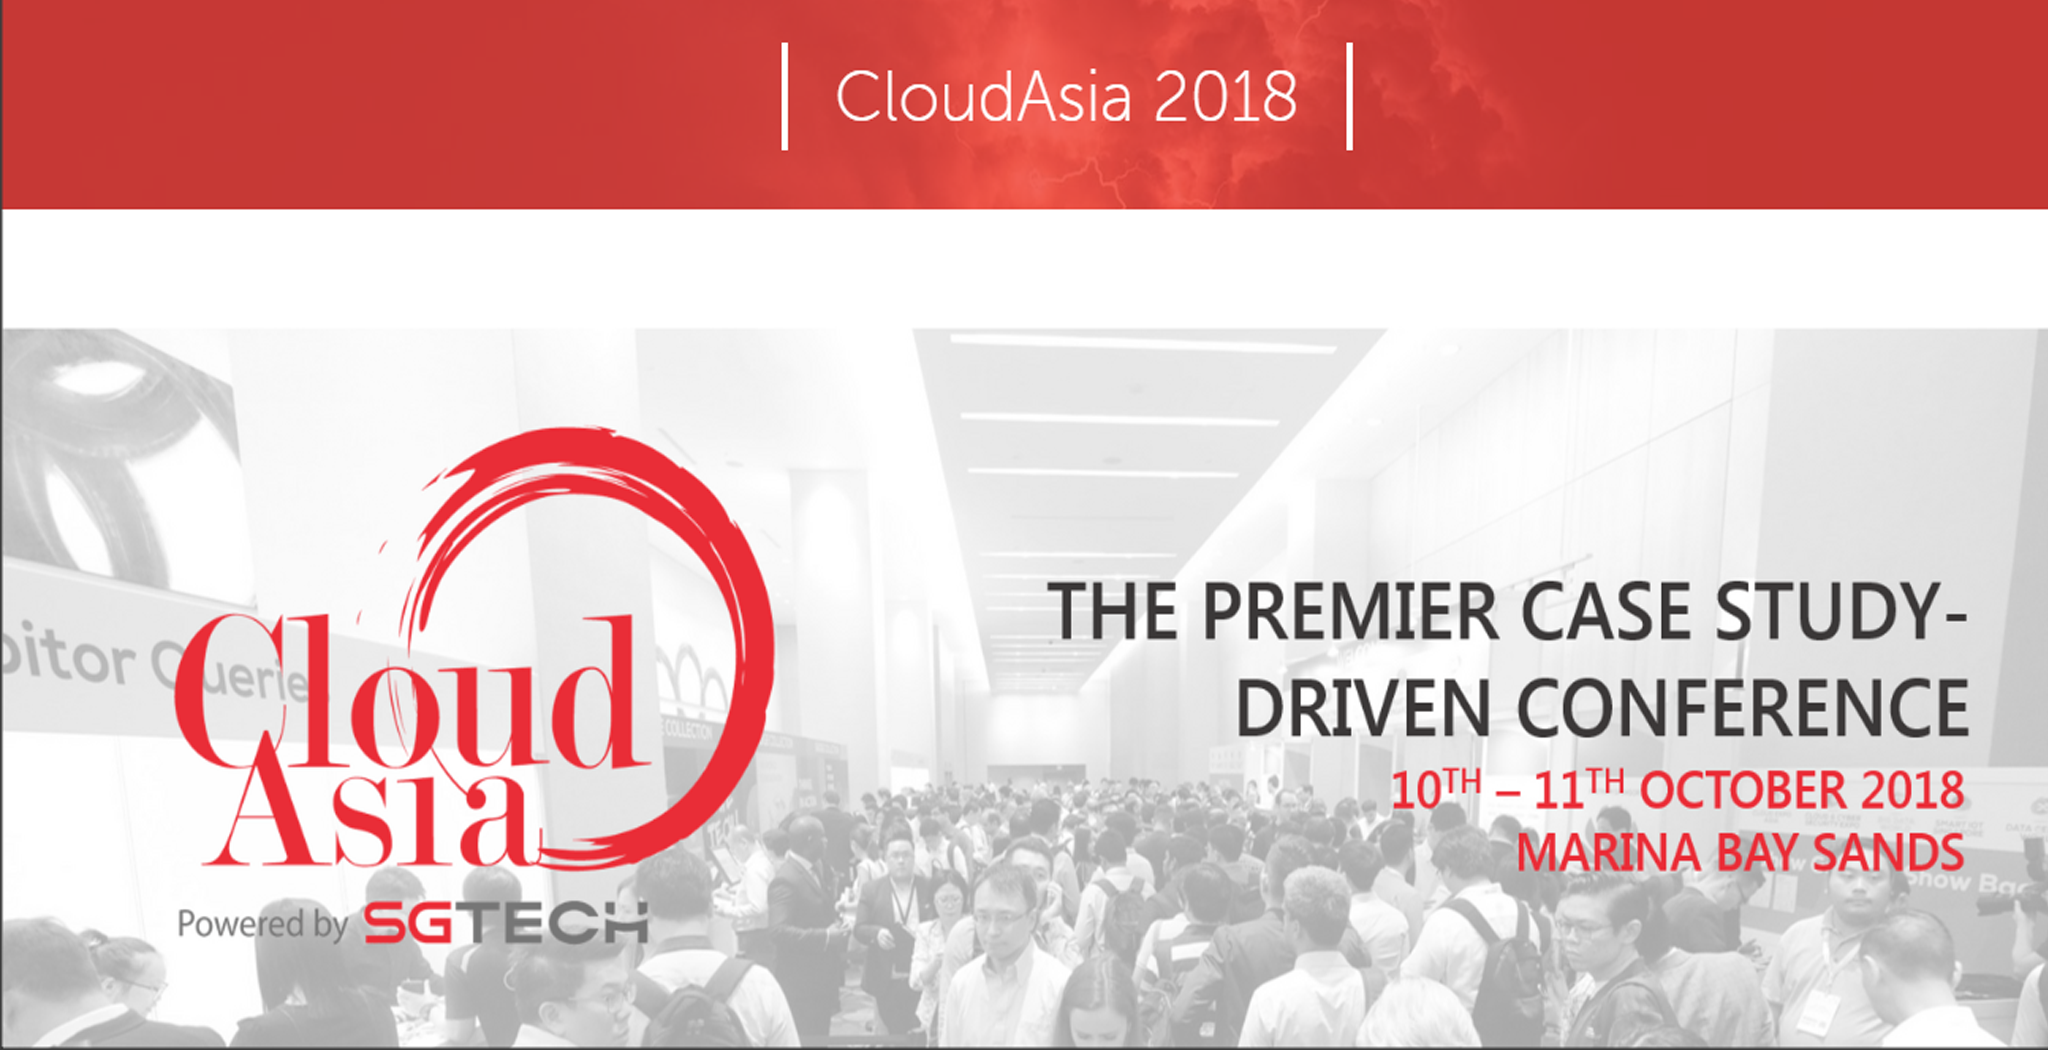 Cloud Expo Asia Singapore 2018 showcases